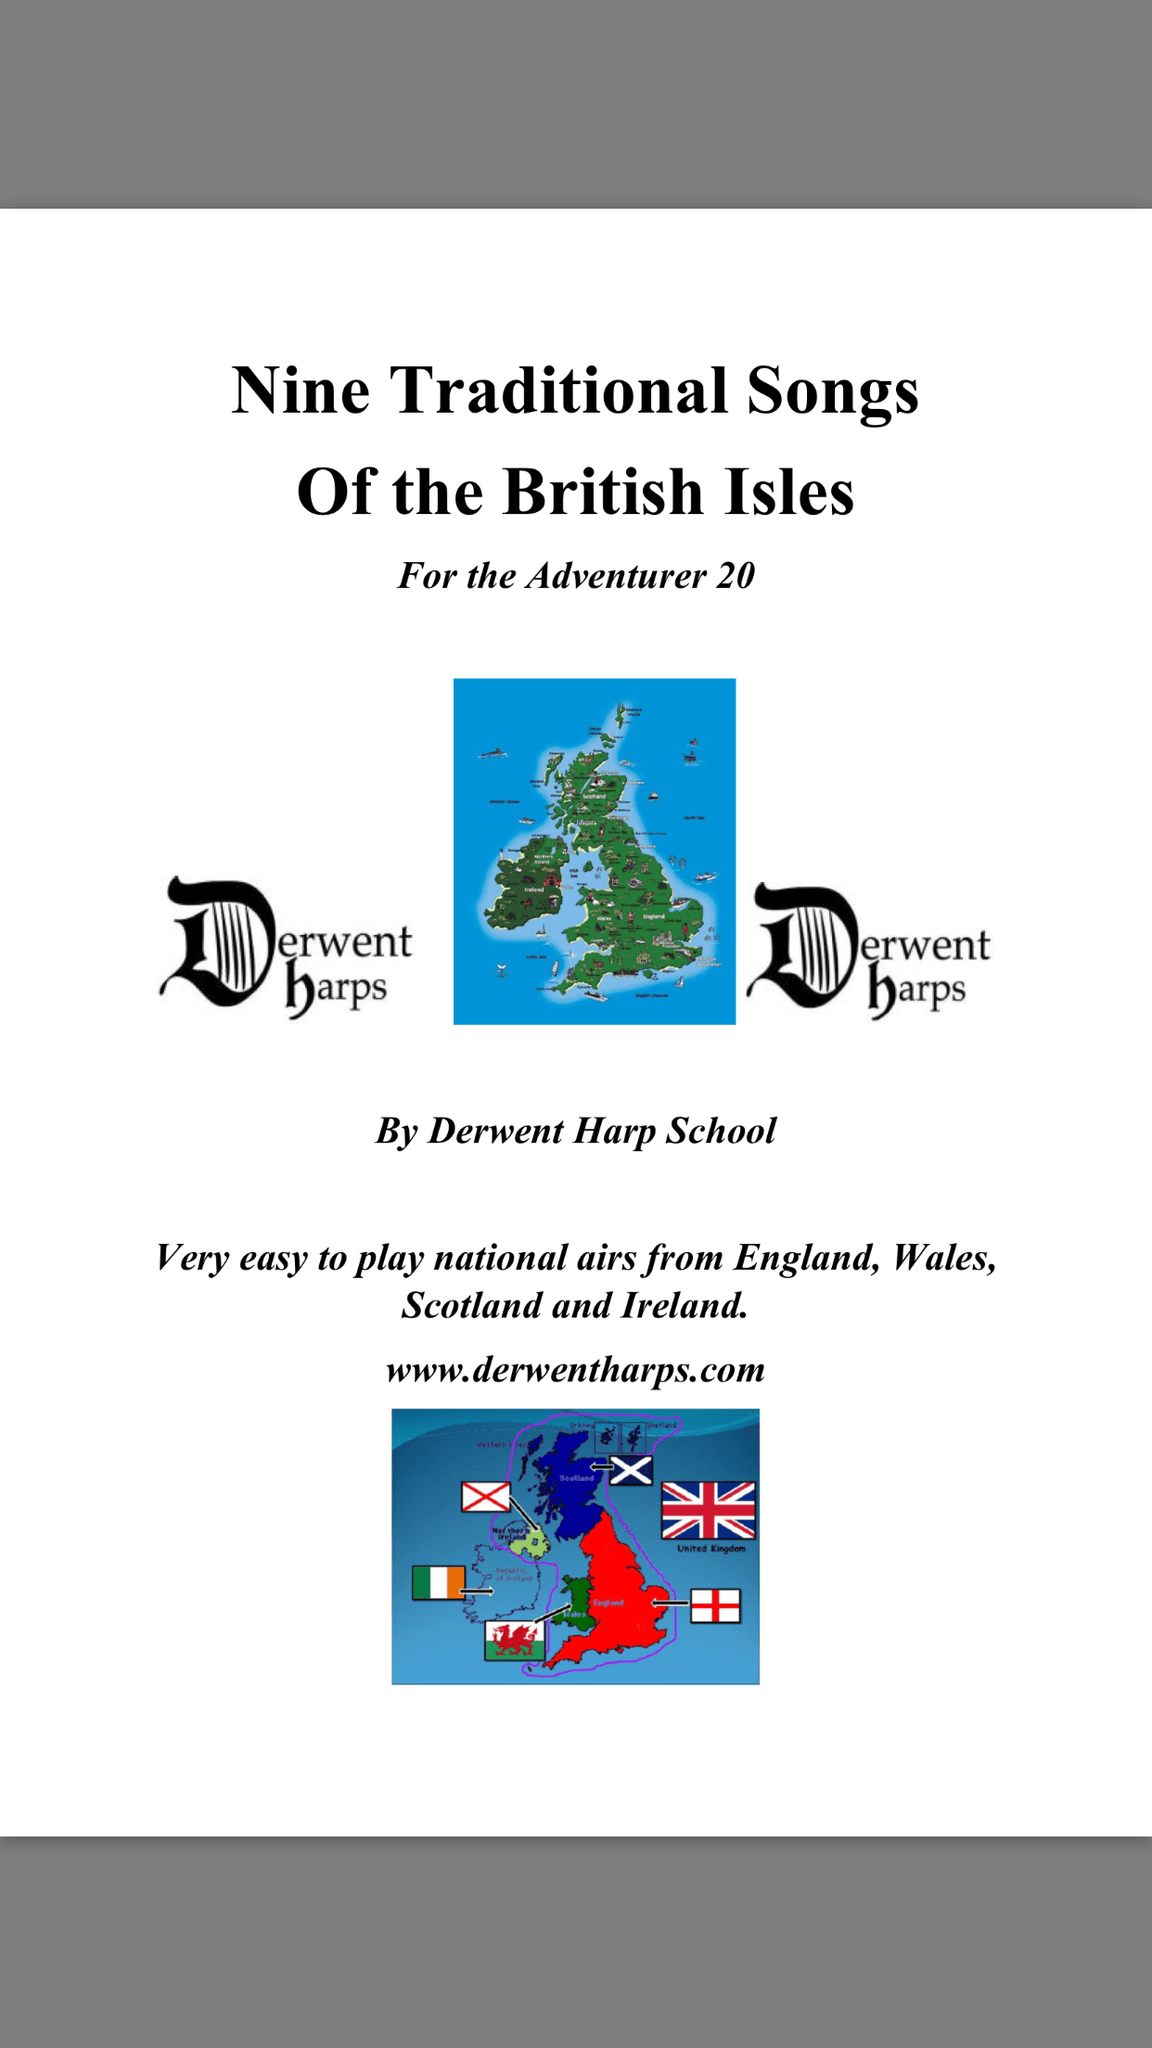 Nine Traditional Songs of the British Isles for the Adventurer 20